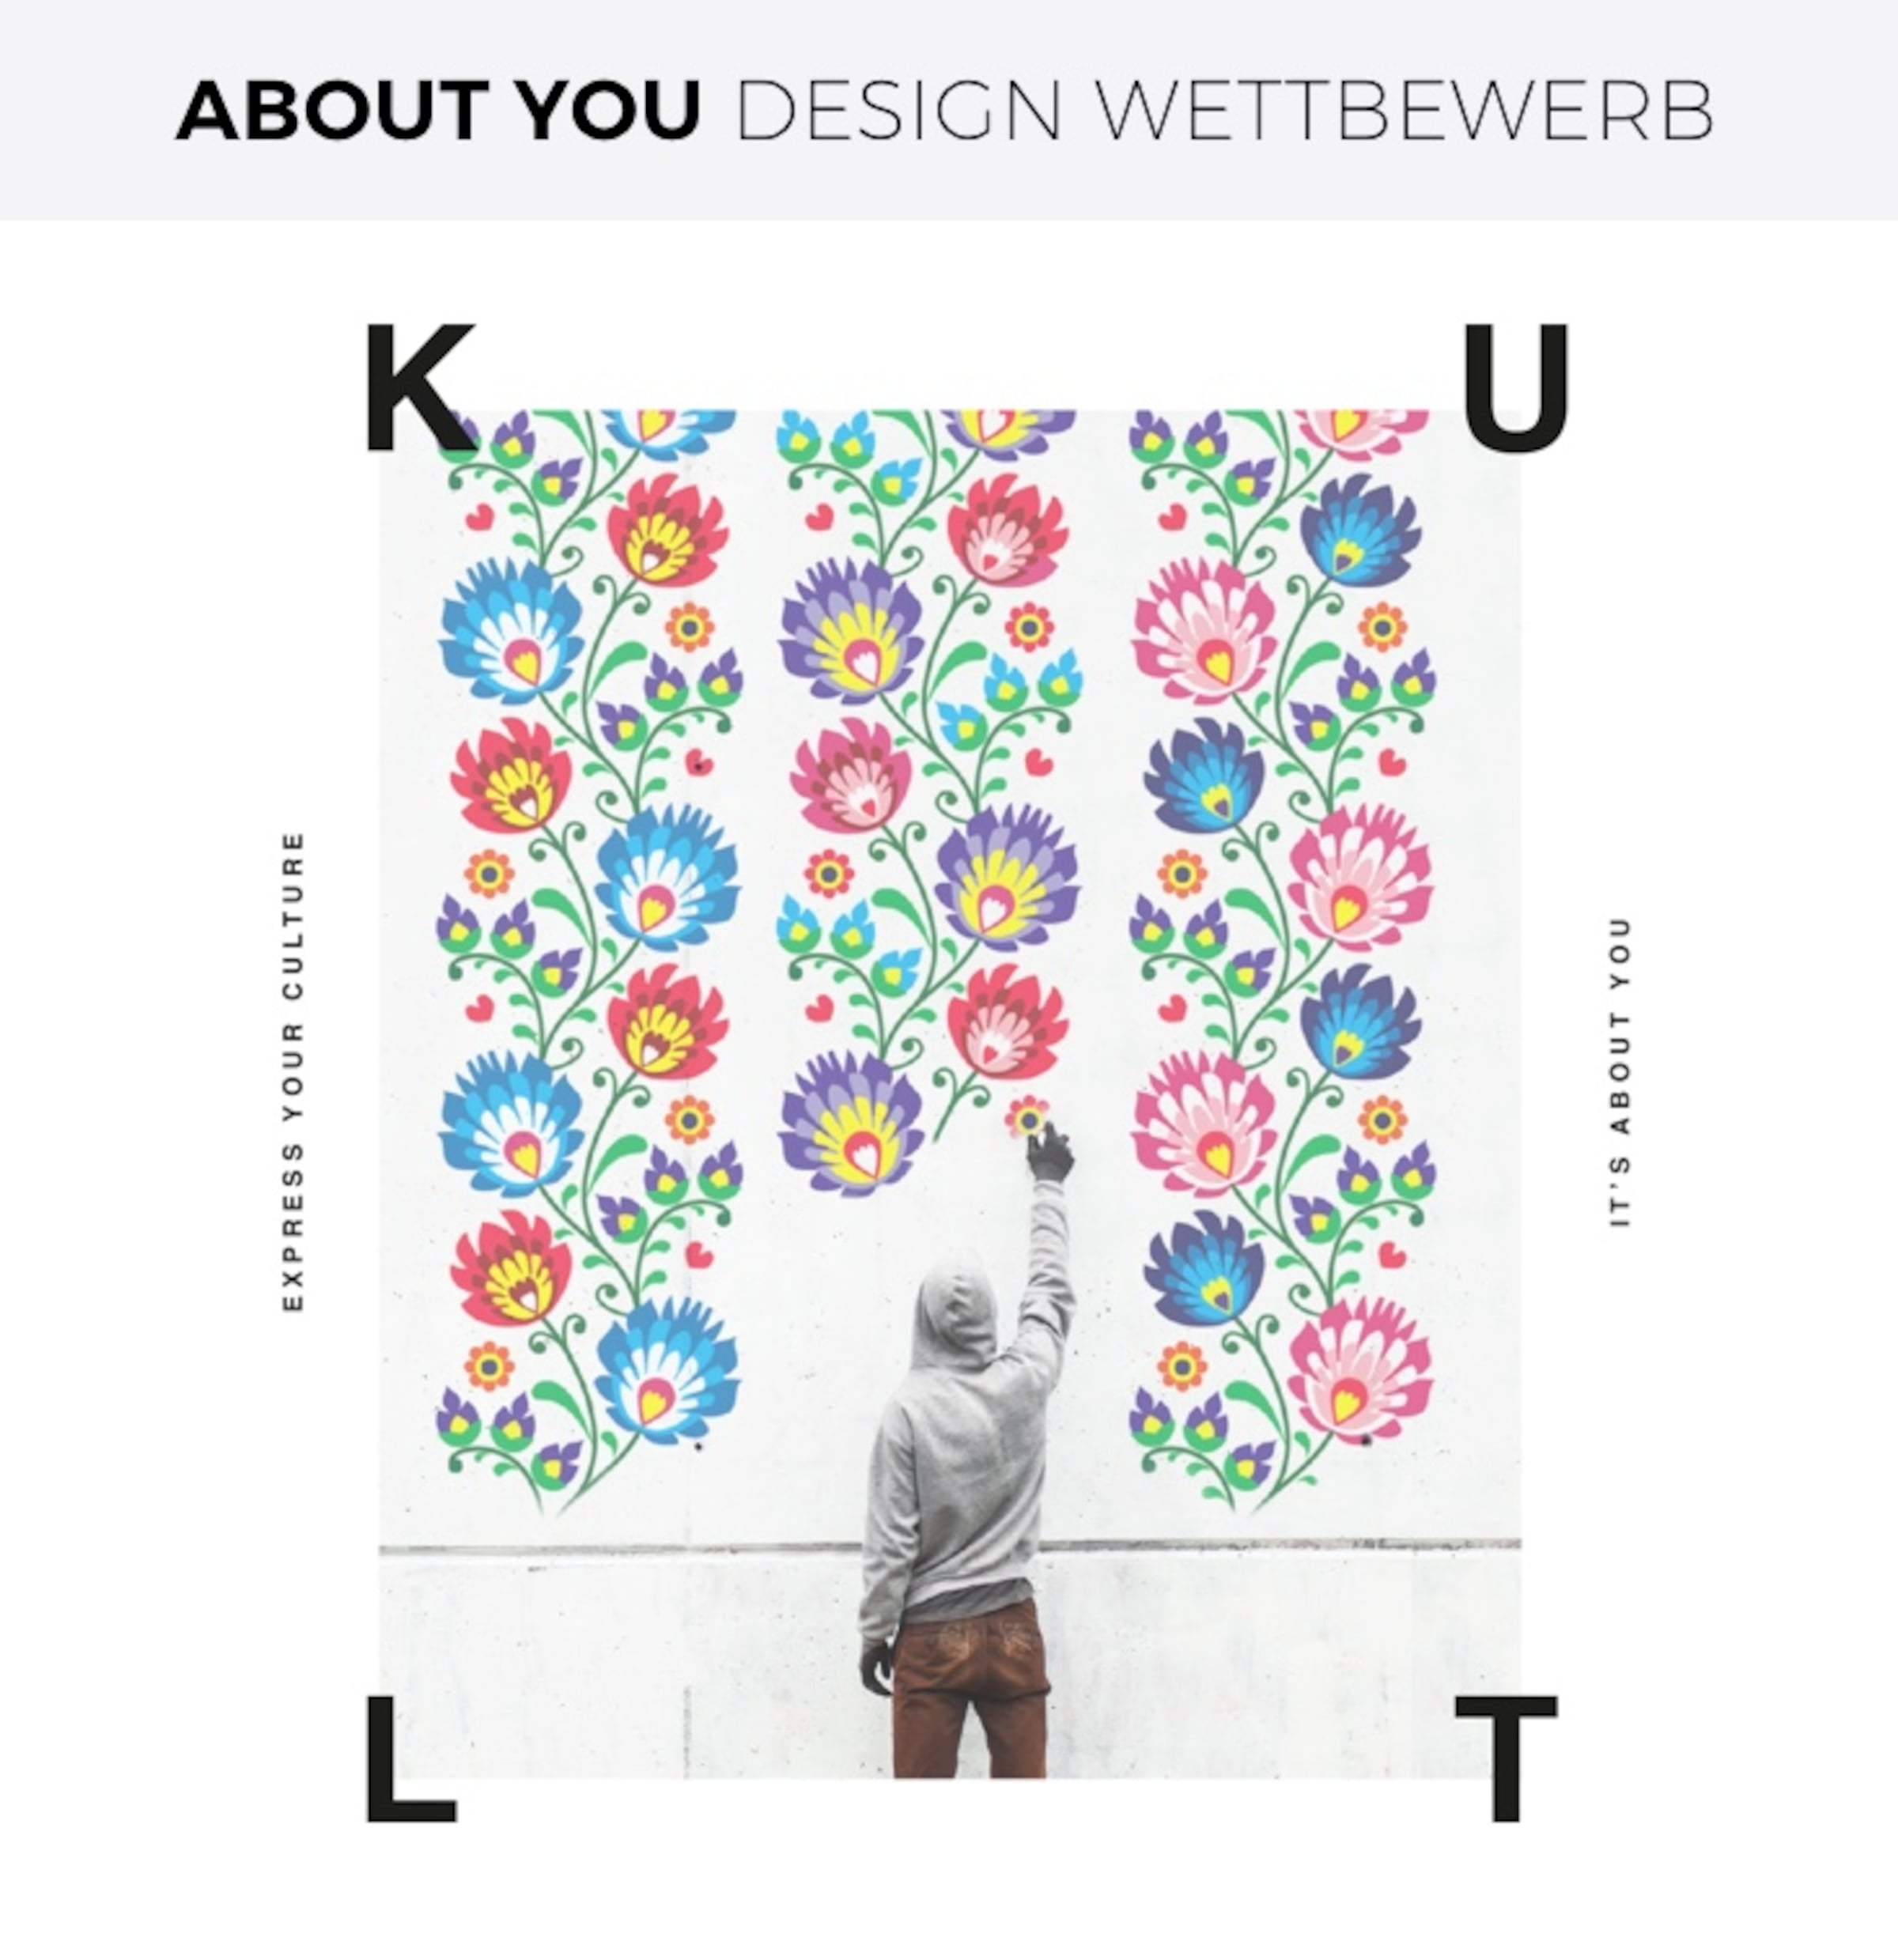 ABOUT YOU Design Wettbewerb